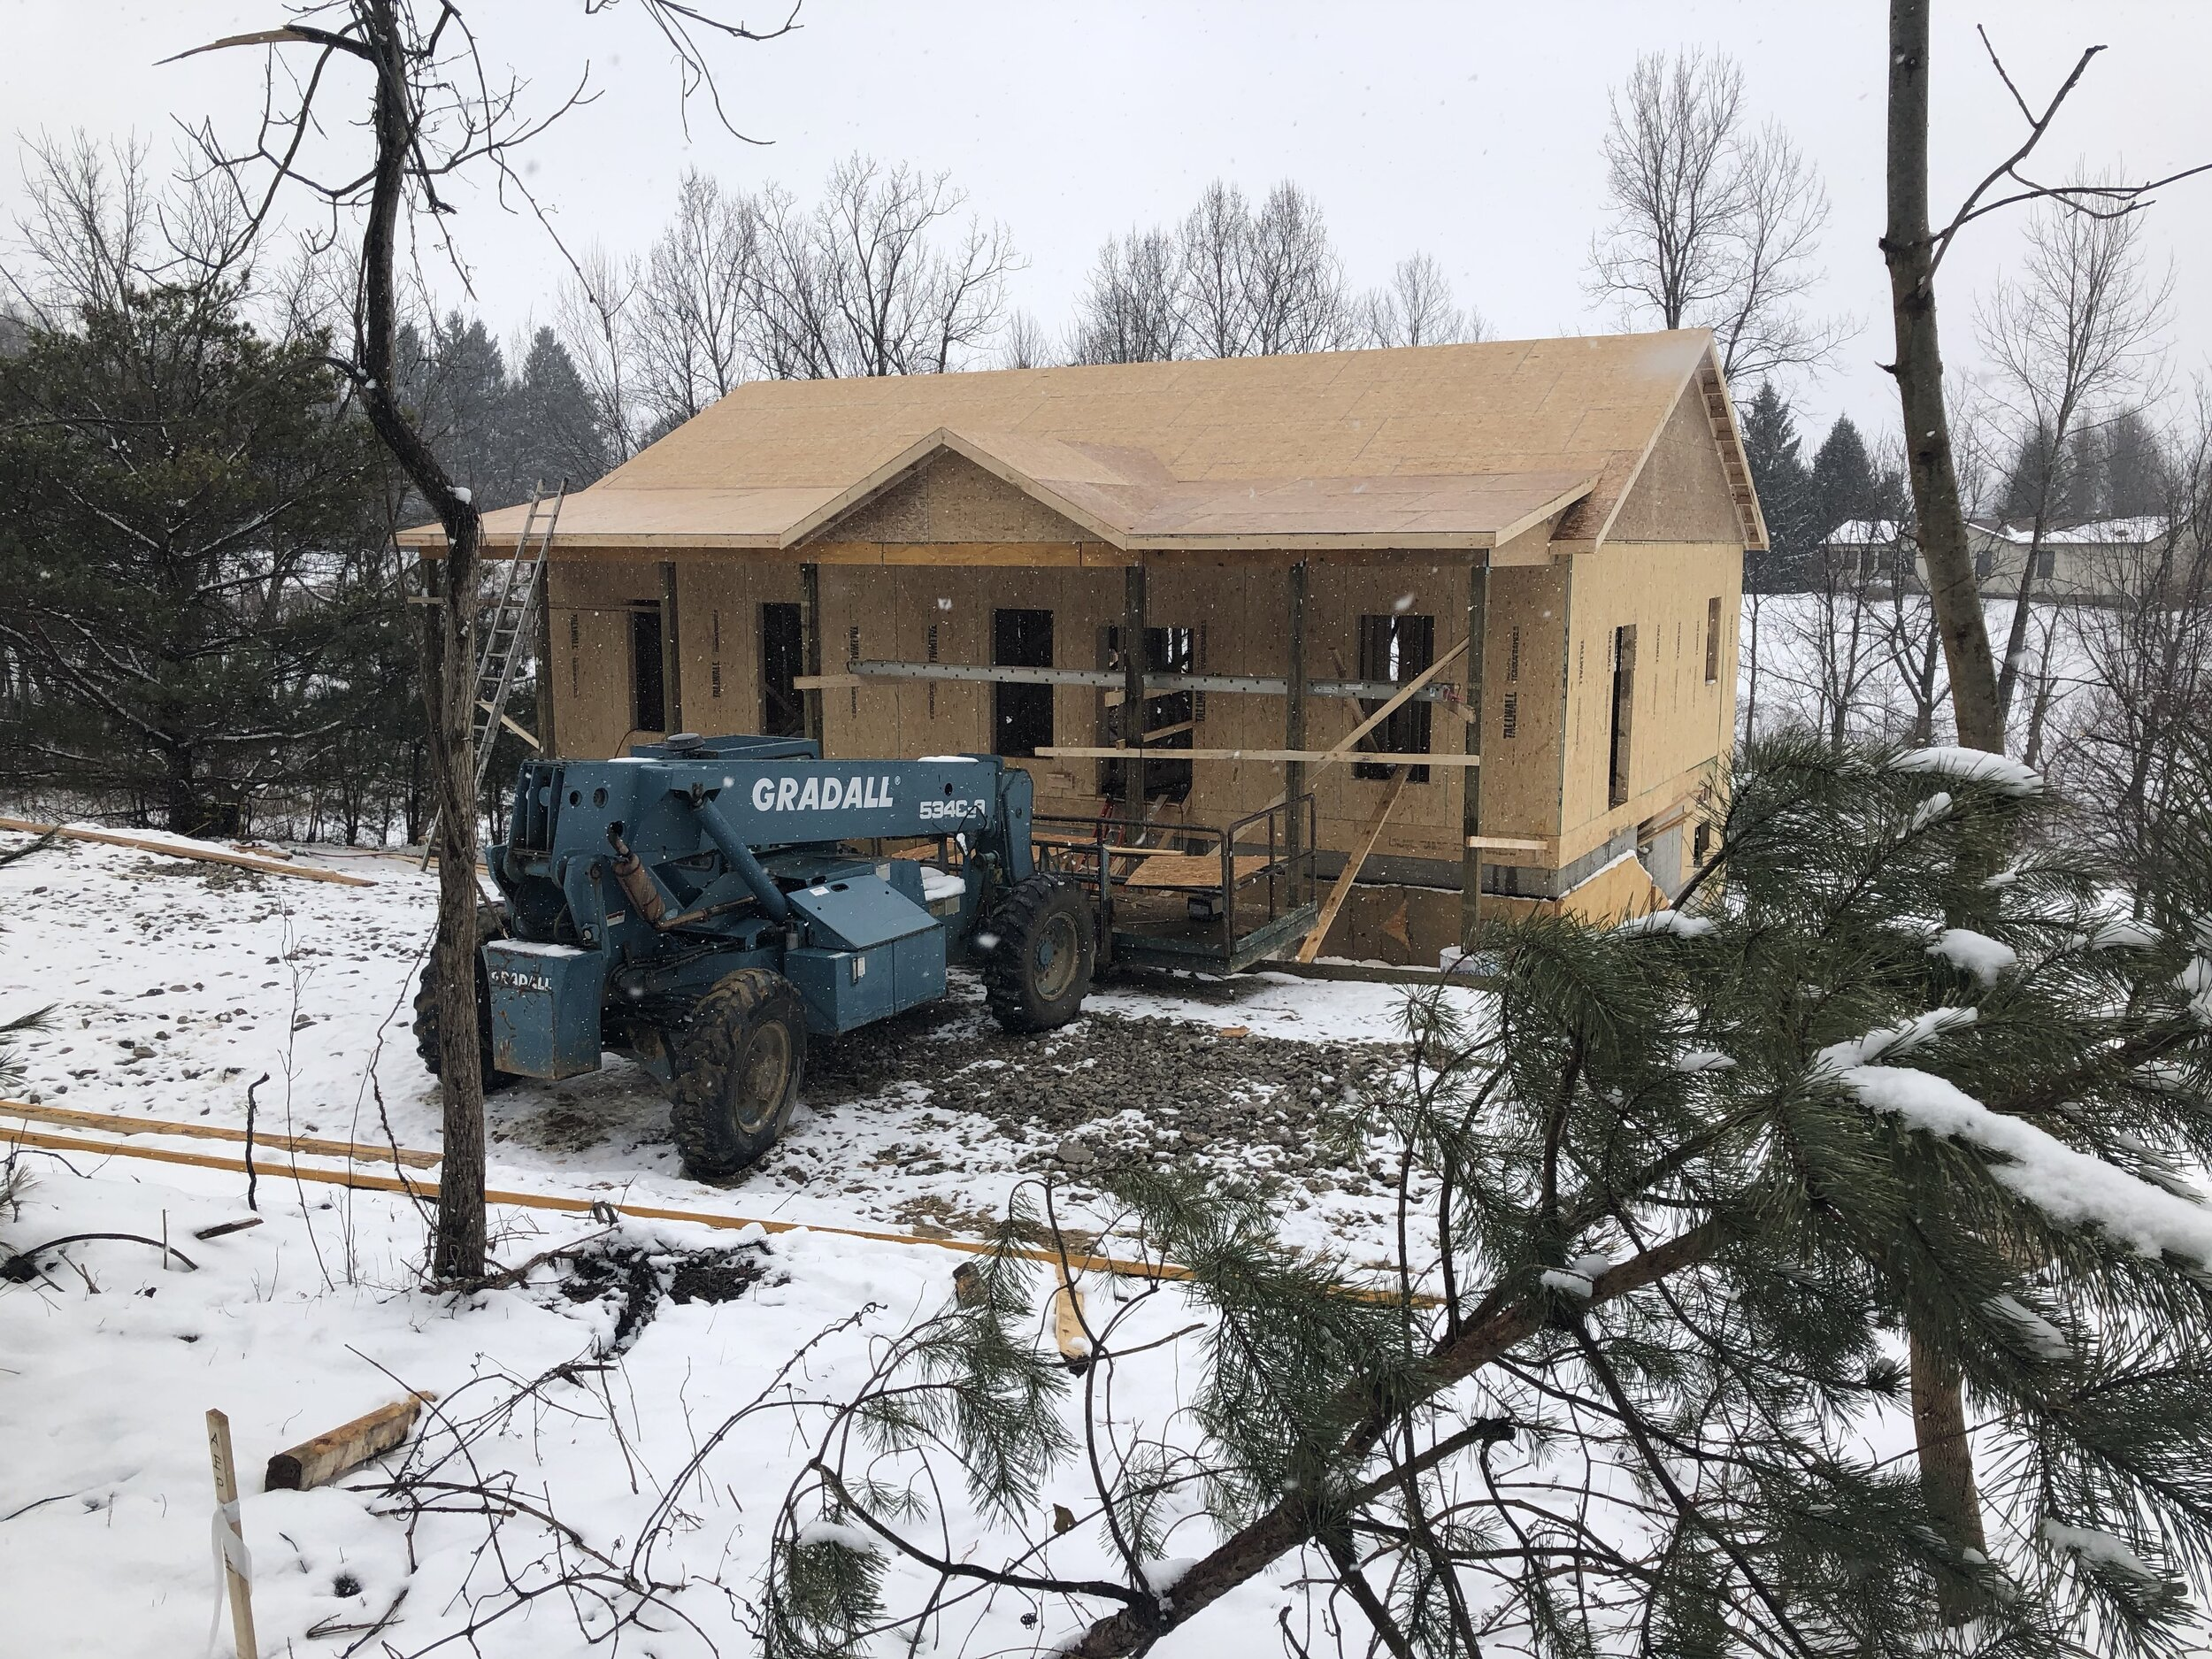 the outside framing of the new house construction